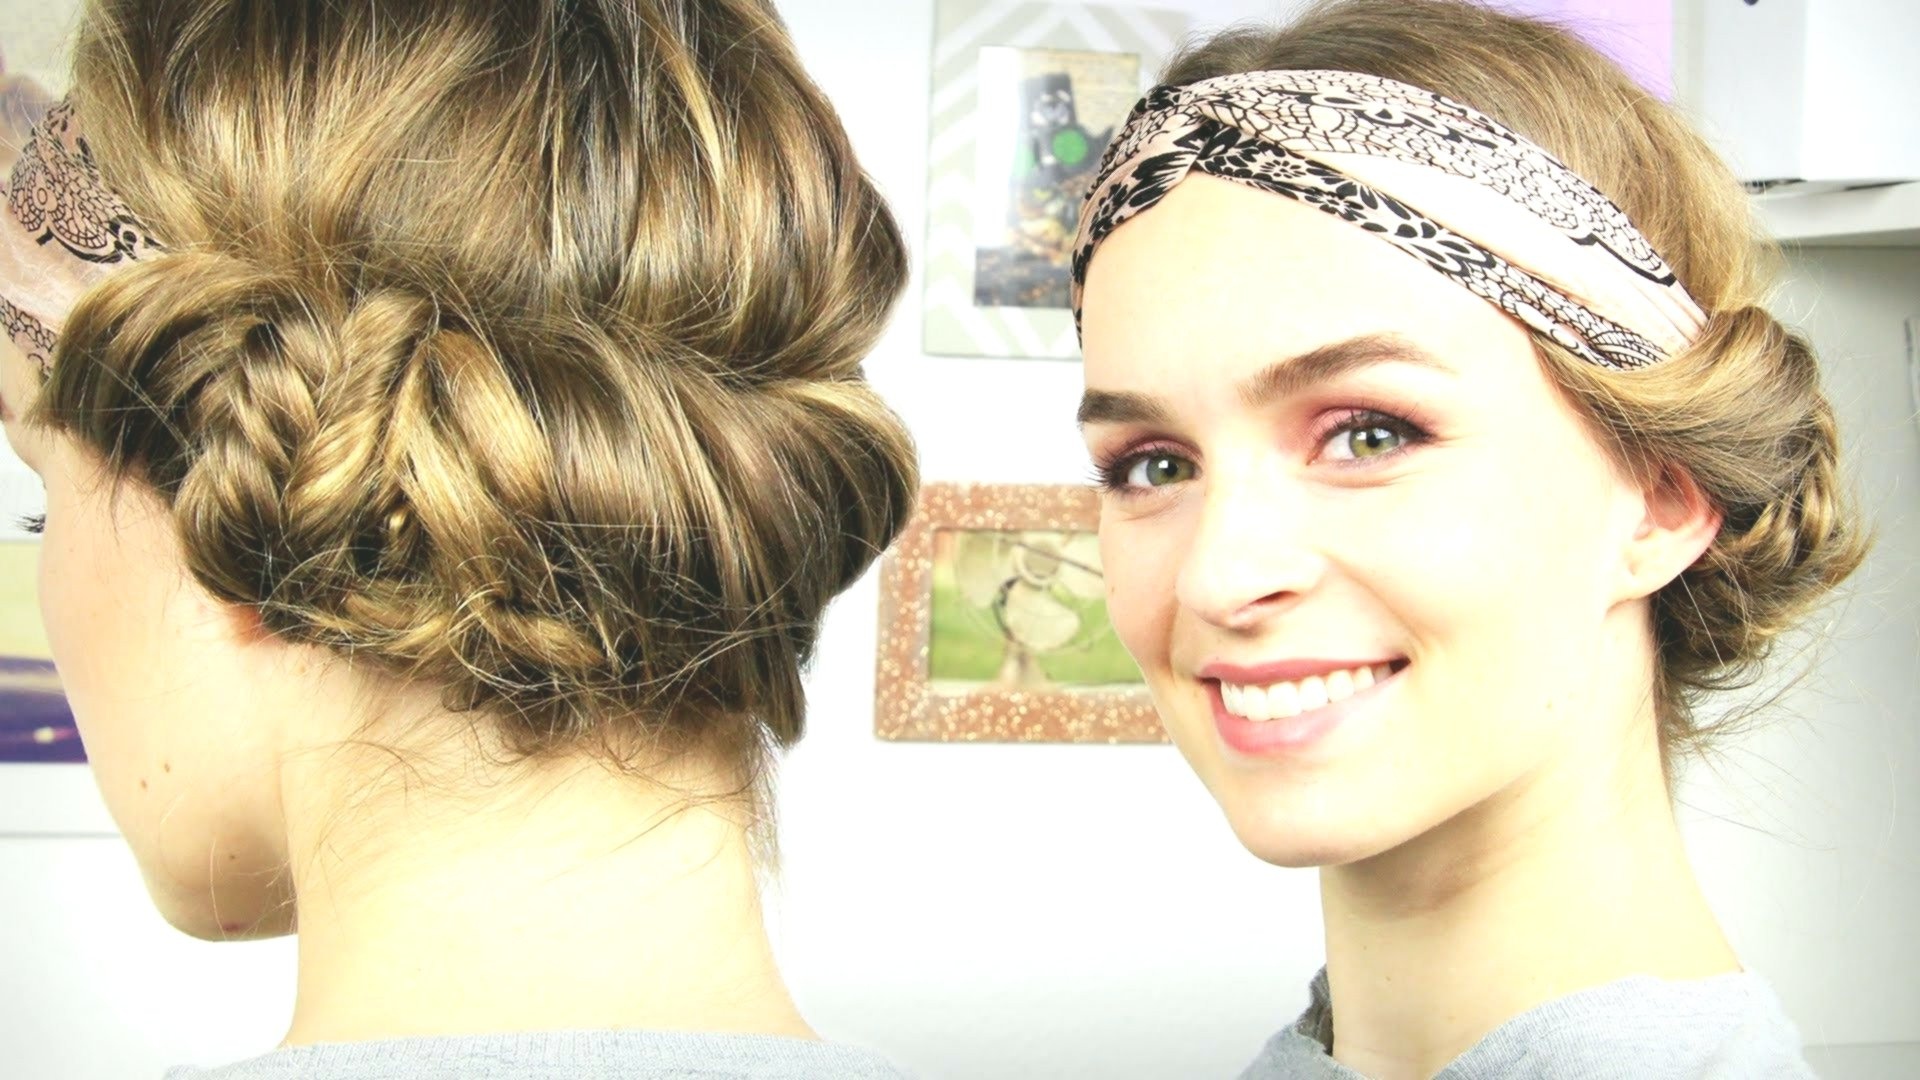 Inspirational hairstyles with braid plan-Inspirational hairstyles With braid models